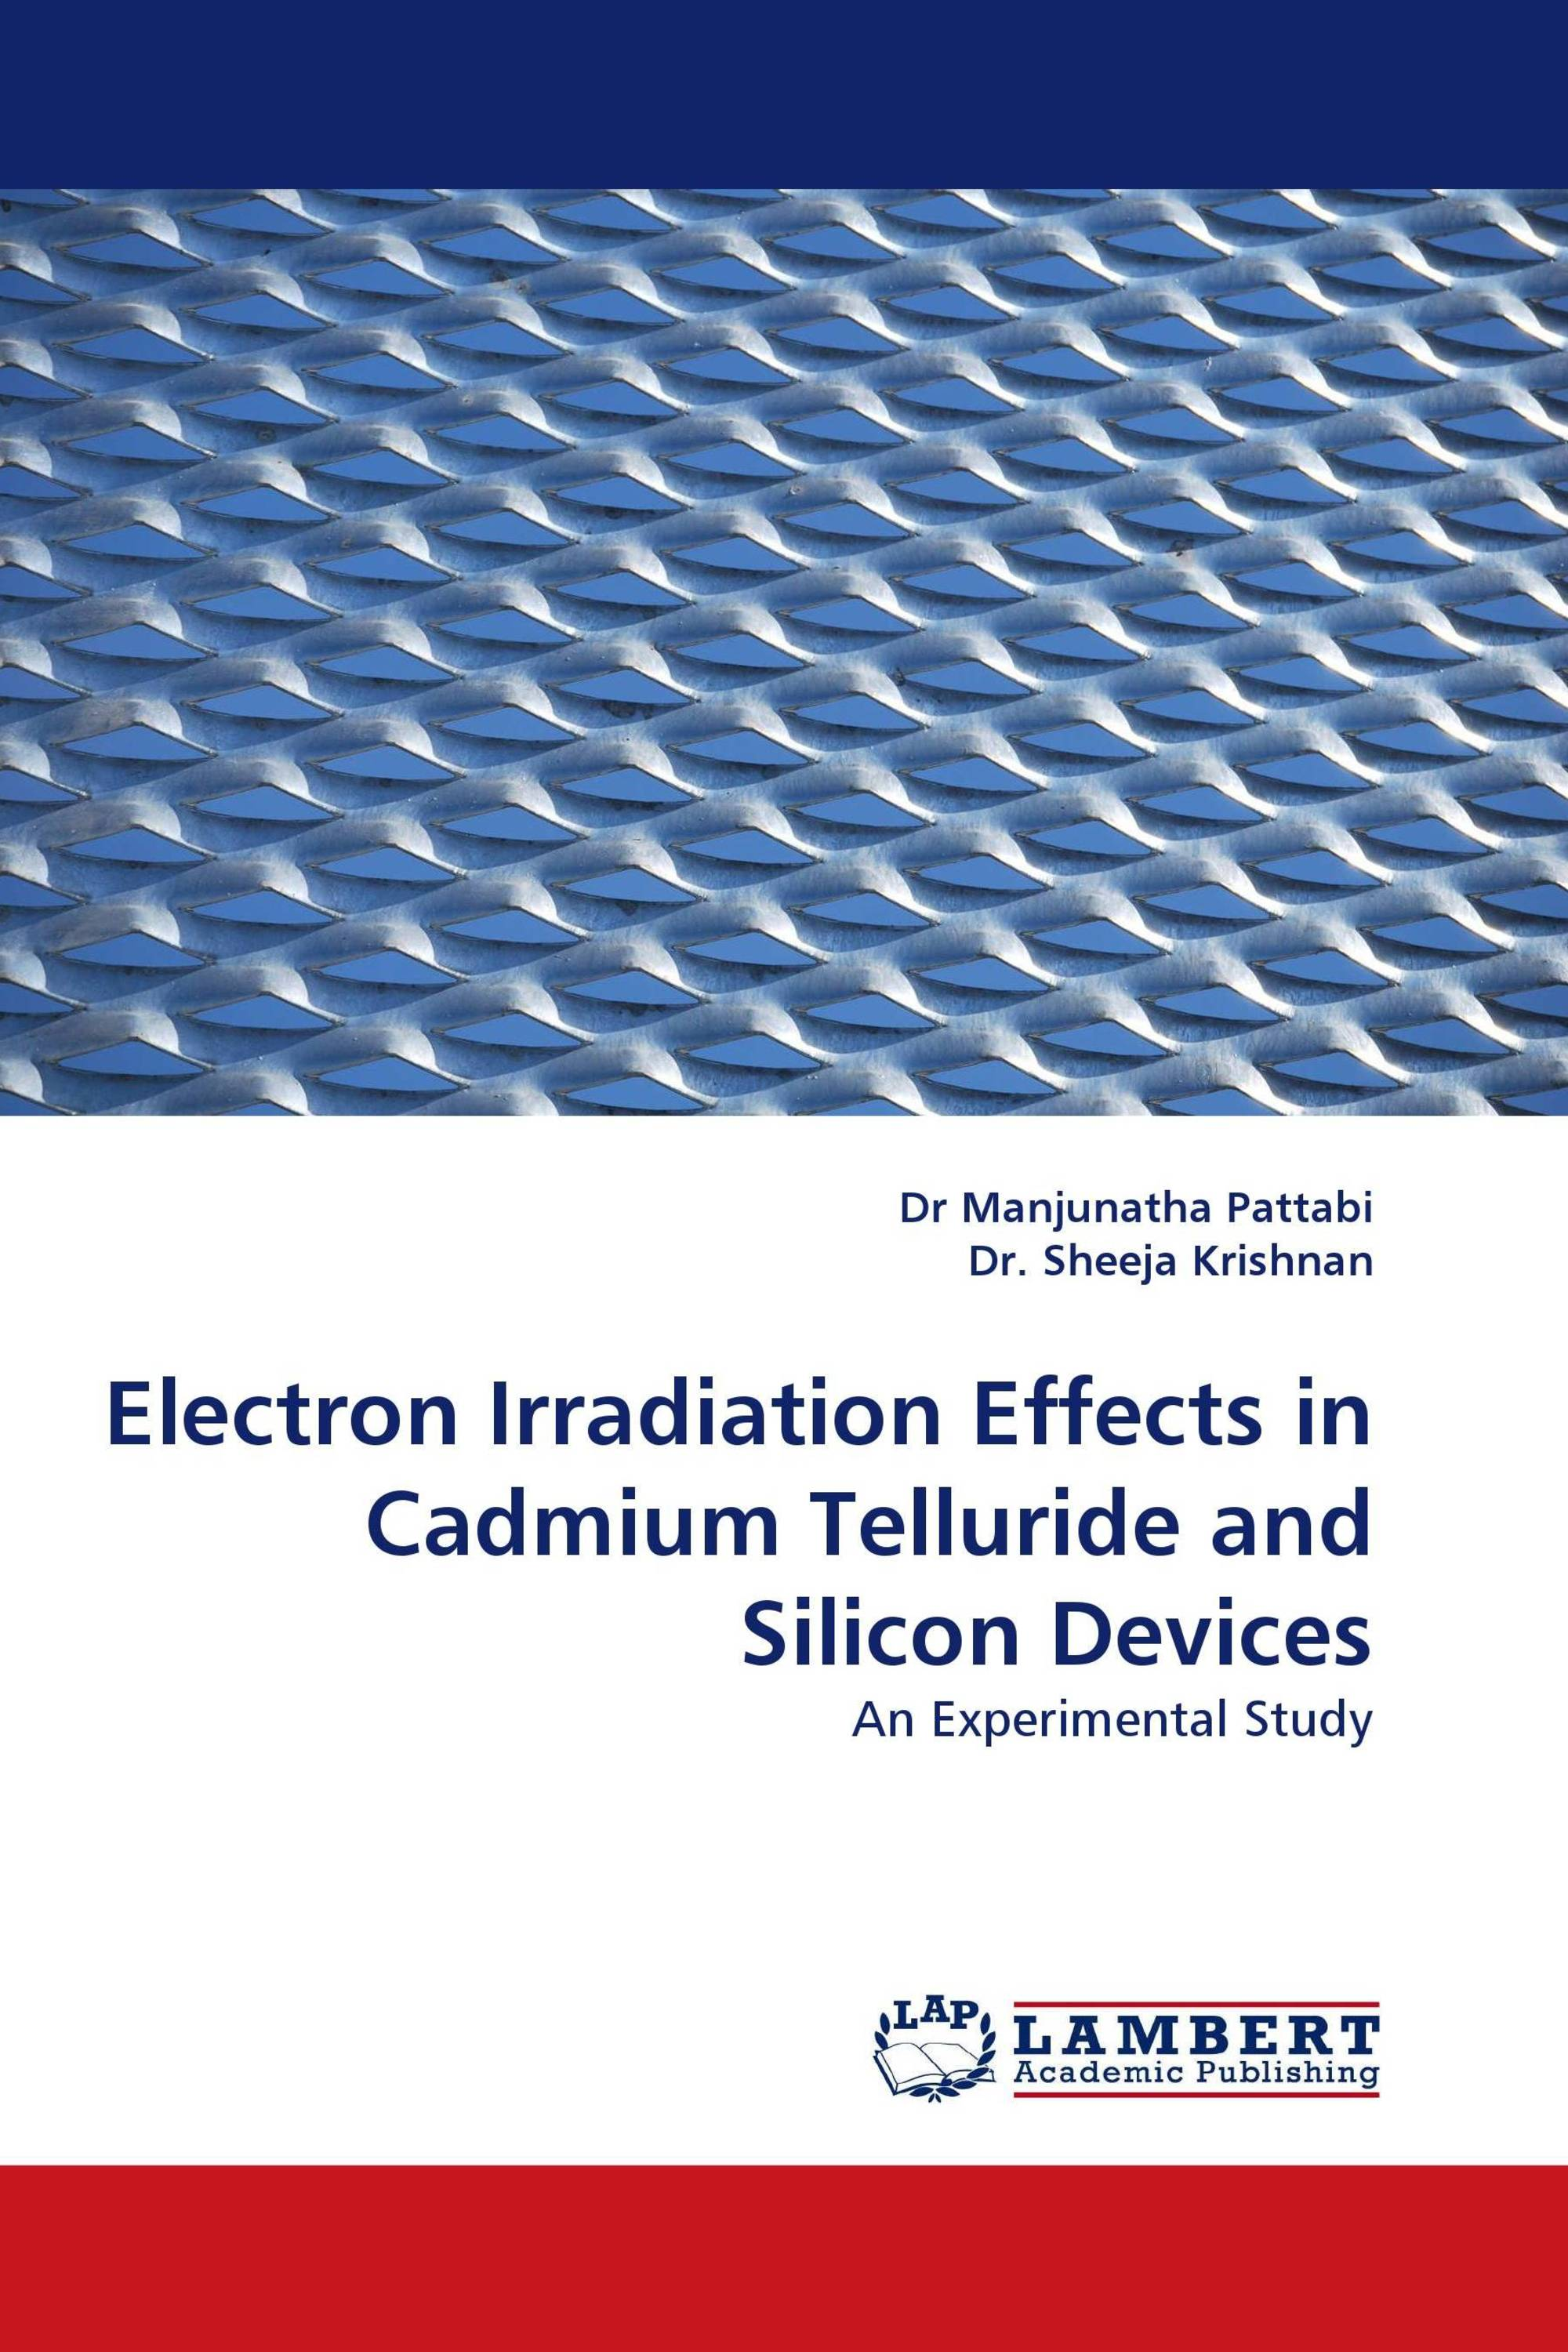 Electron Irradiation Effects in Cadmium Telluride and Silicon Devices